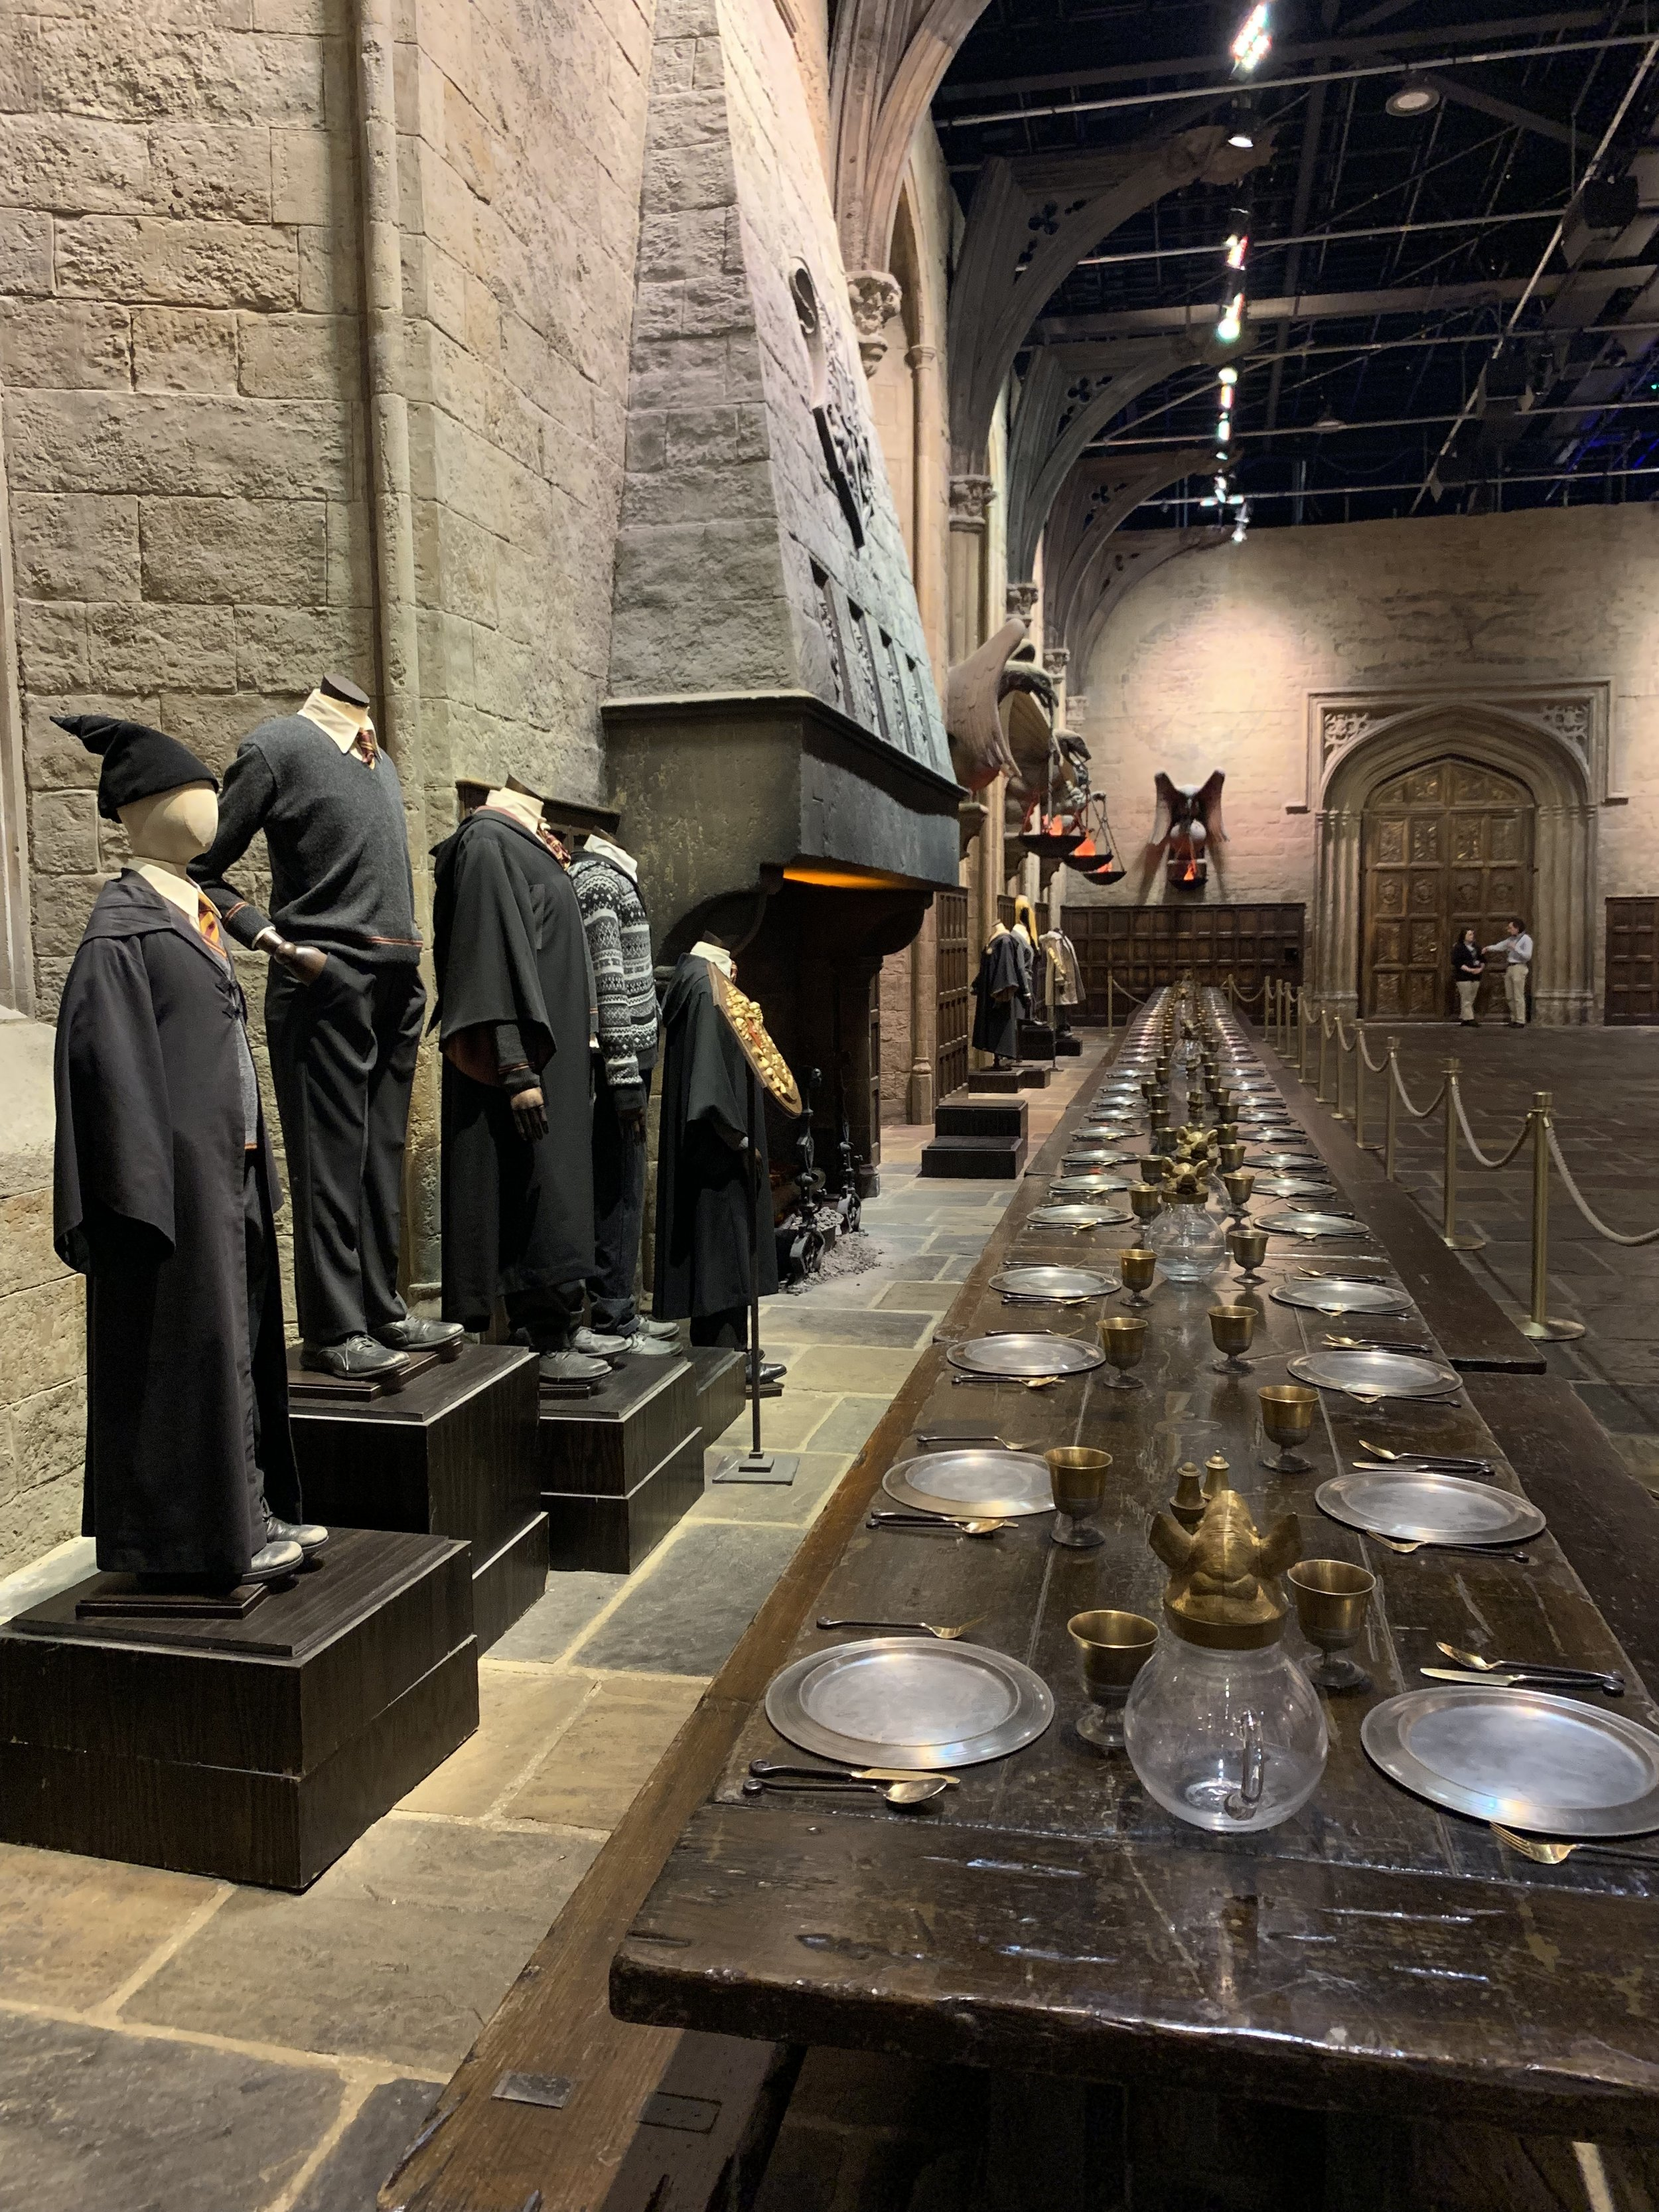 Looking down Griffindor's table